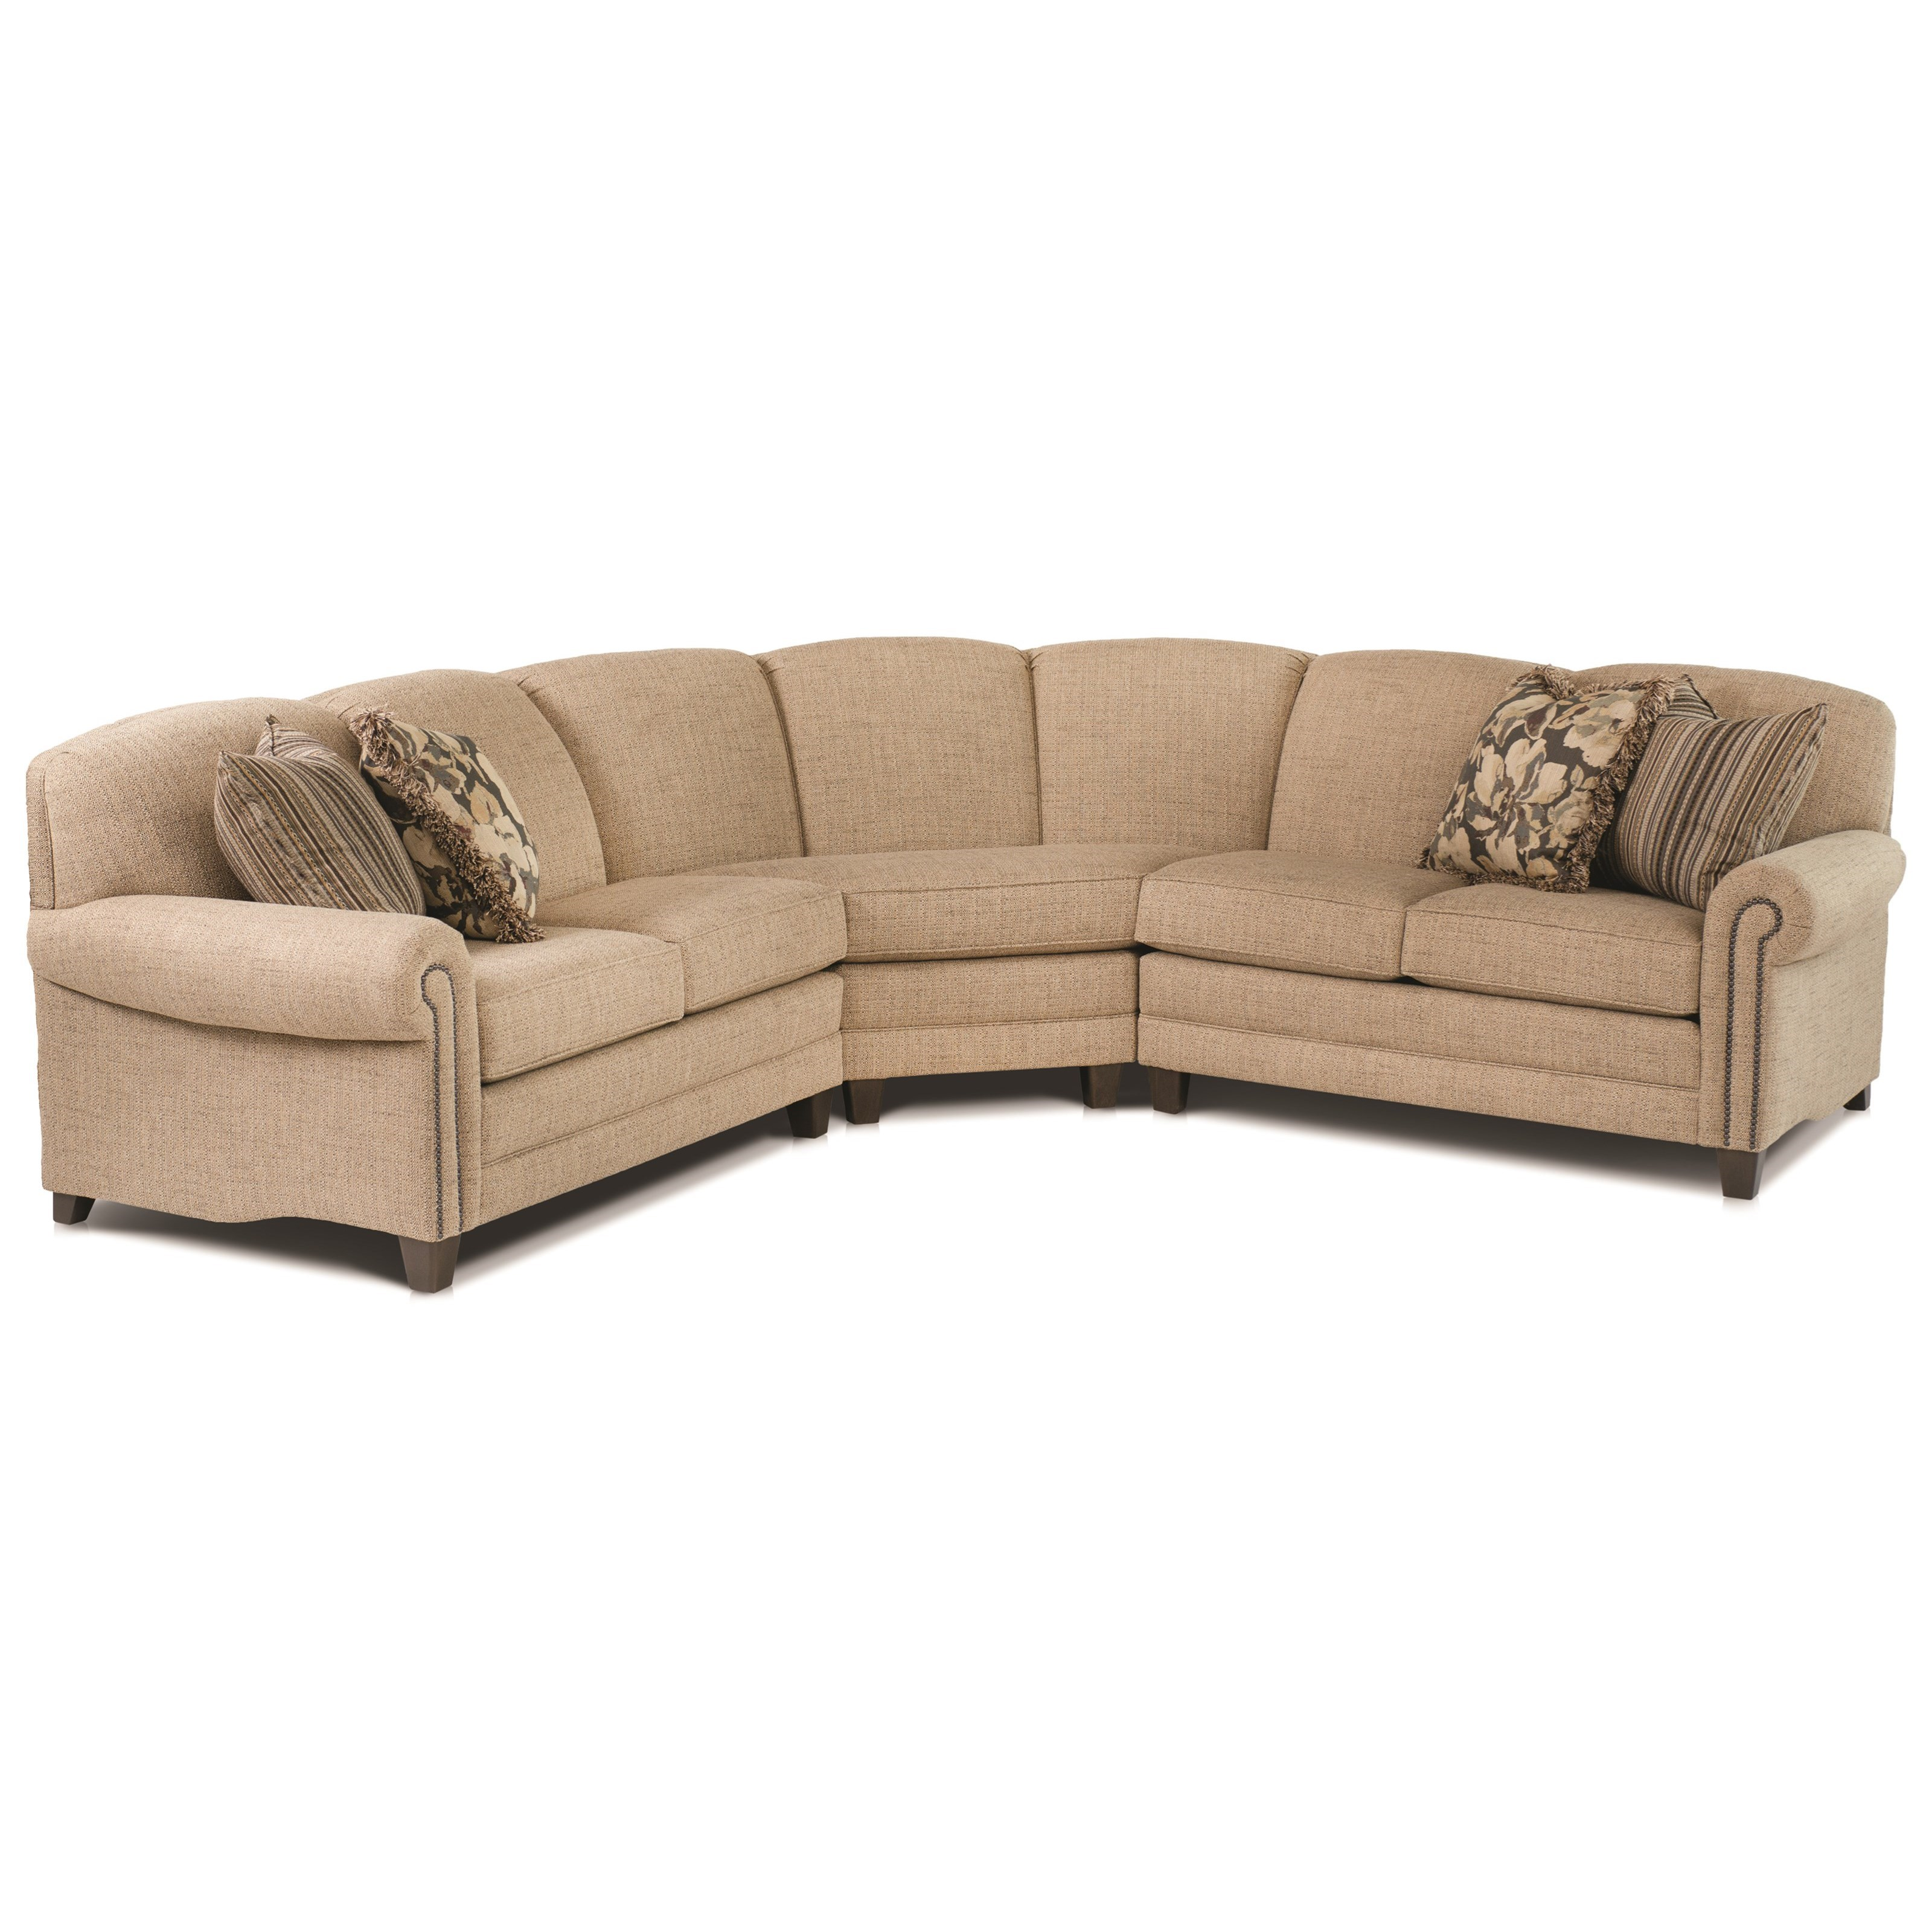 397 Stationary Sectional by Smith Brothers at Westrich Furniture & Appliances